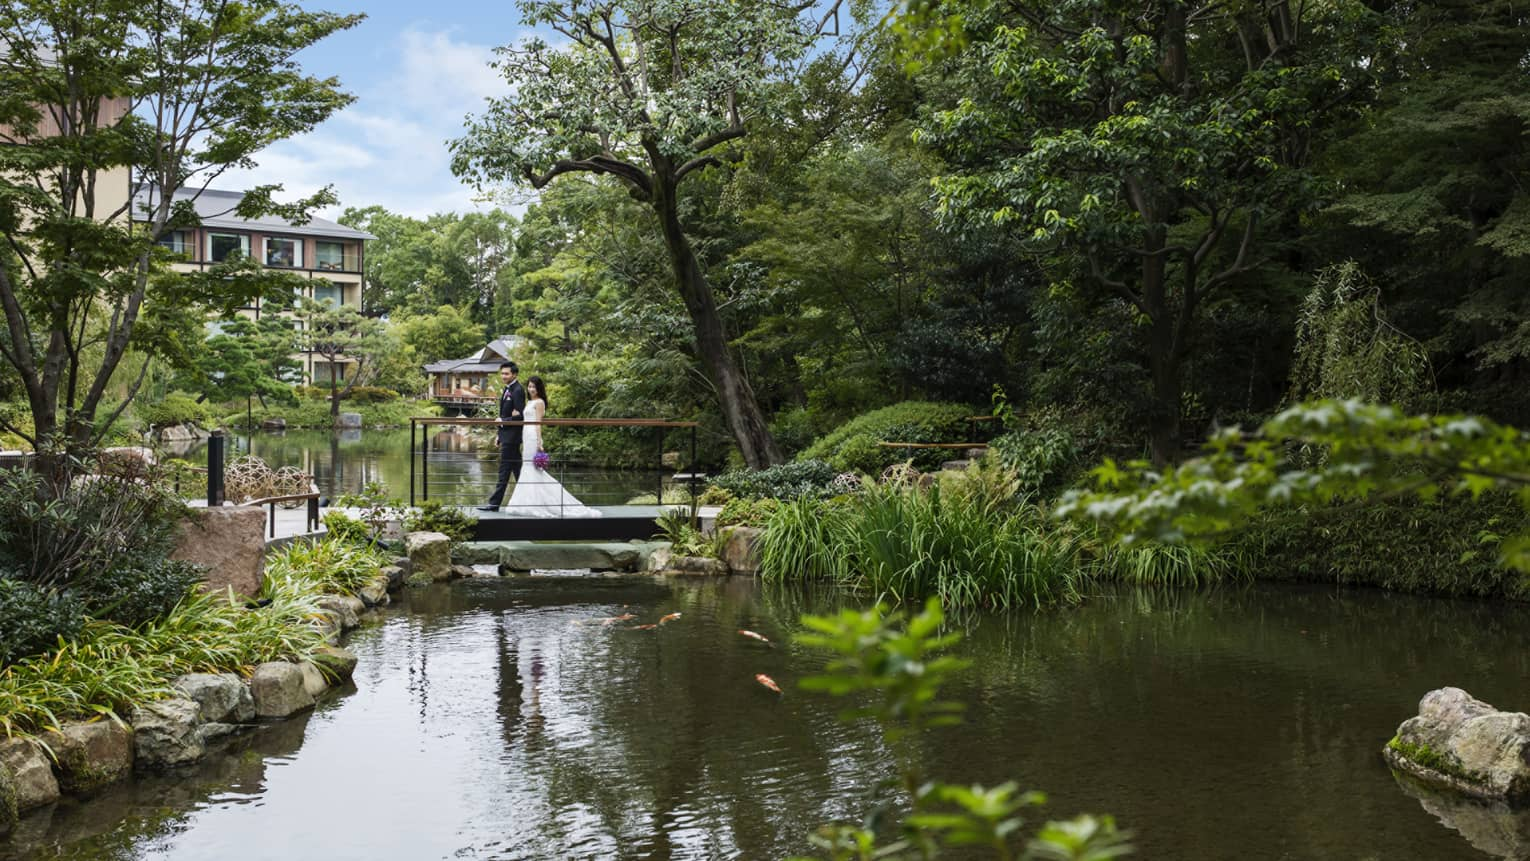 Bride and groom walk across small bridge over pond under trees